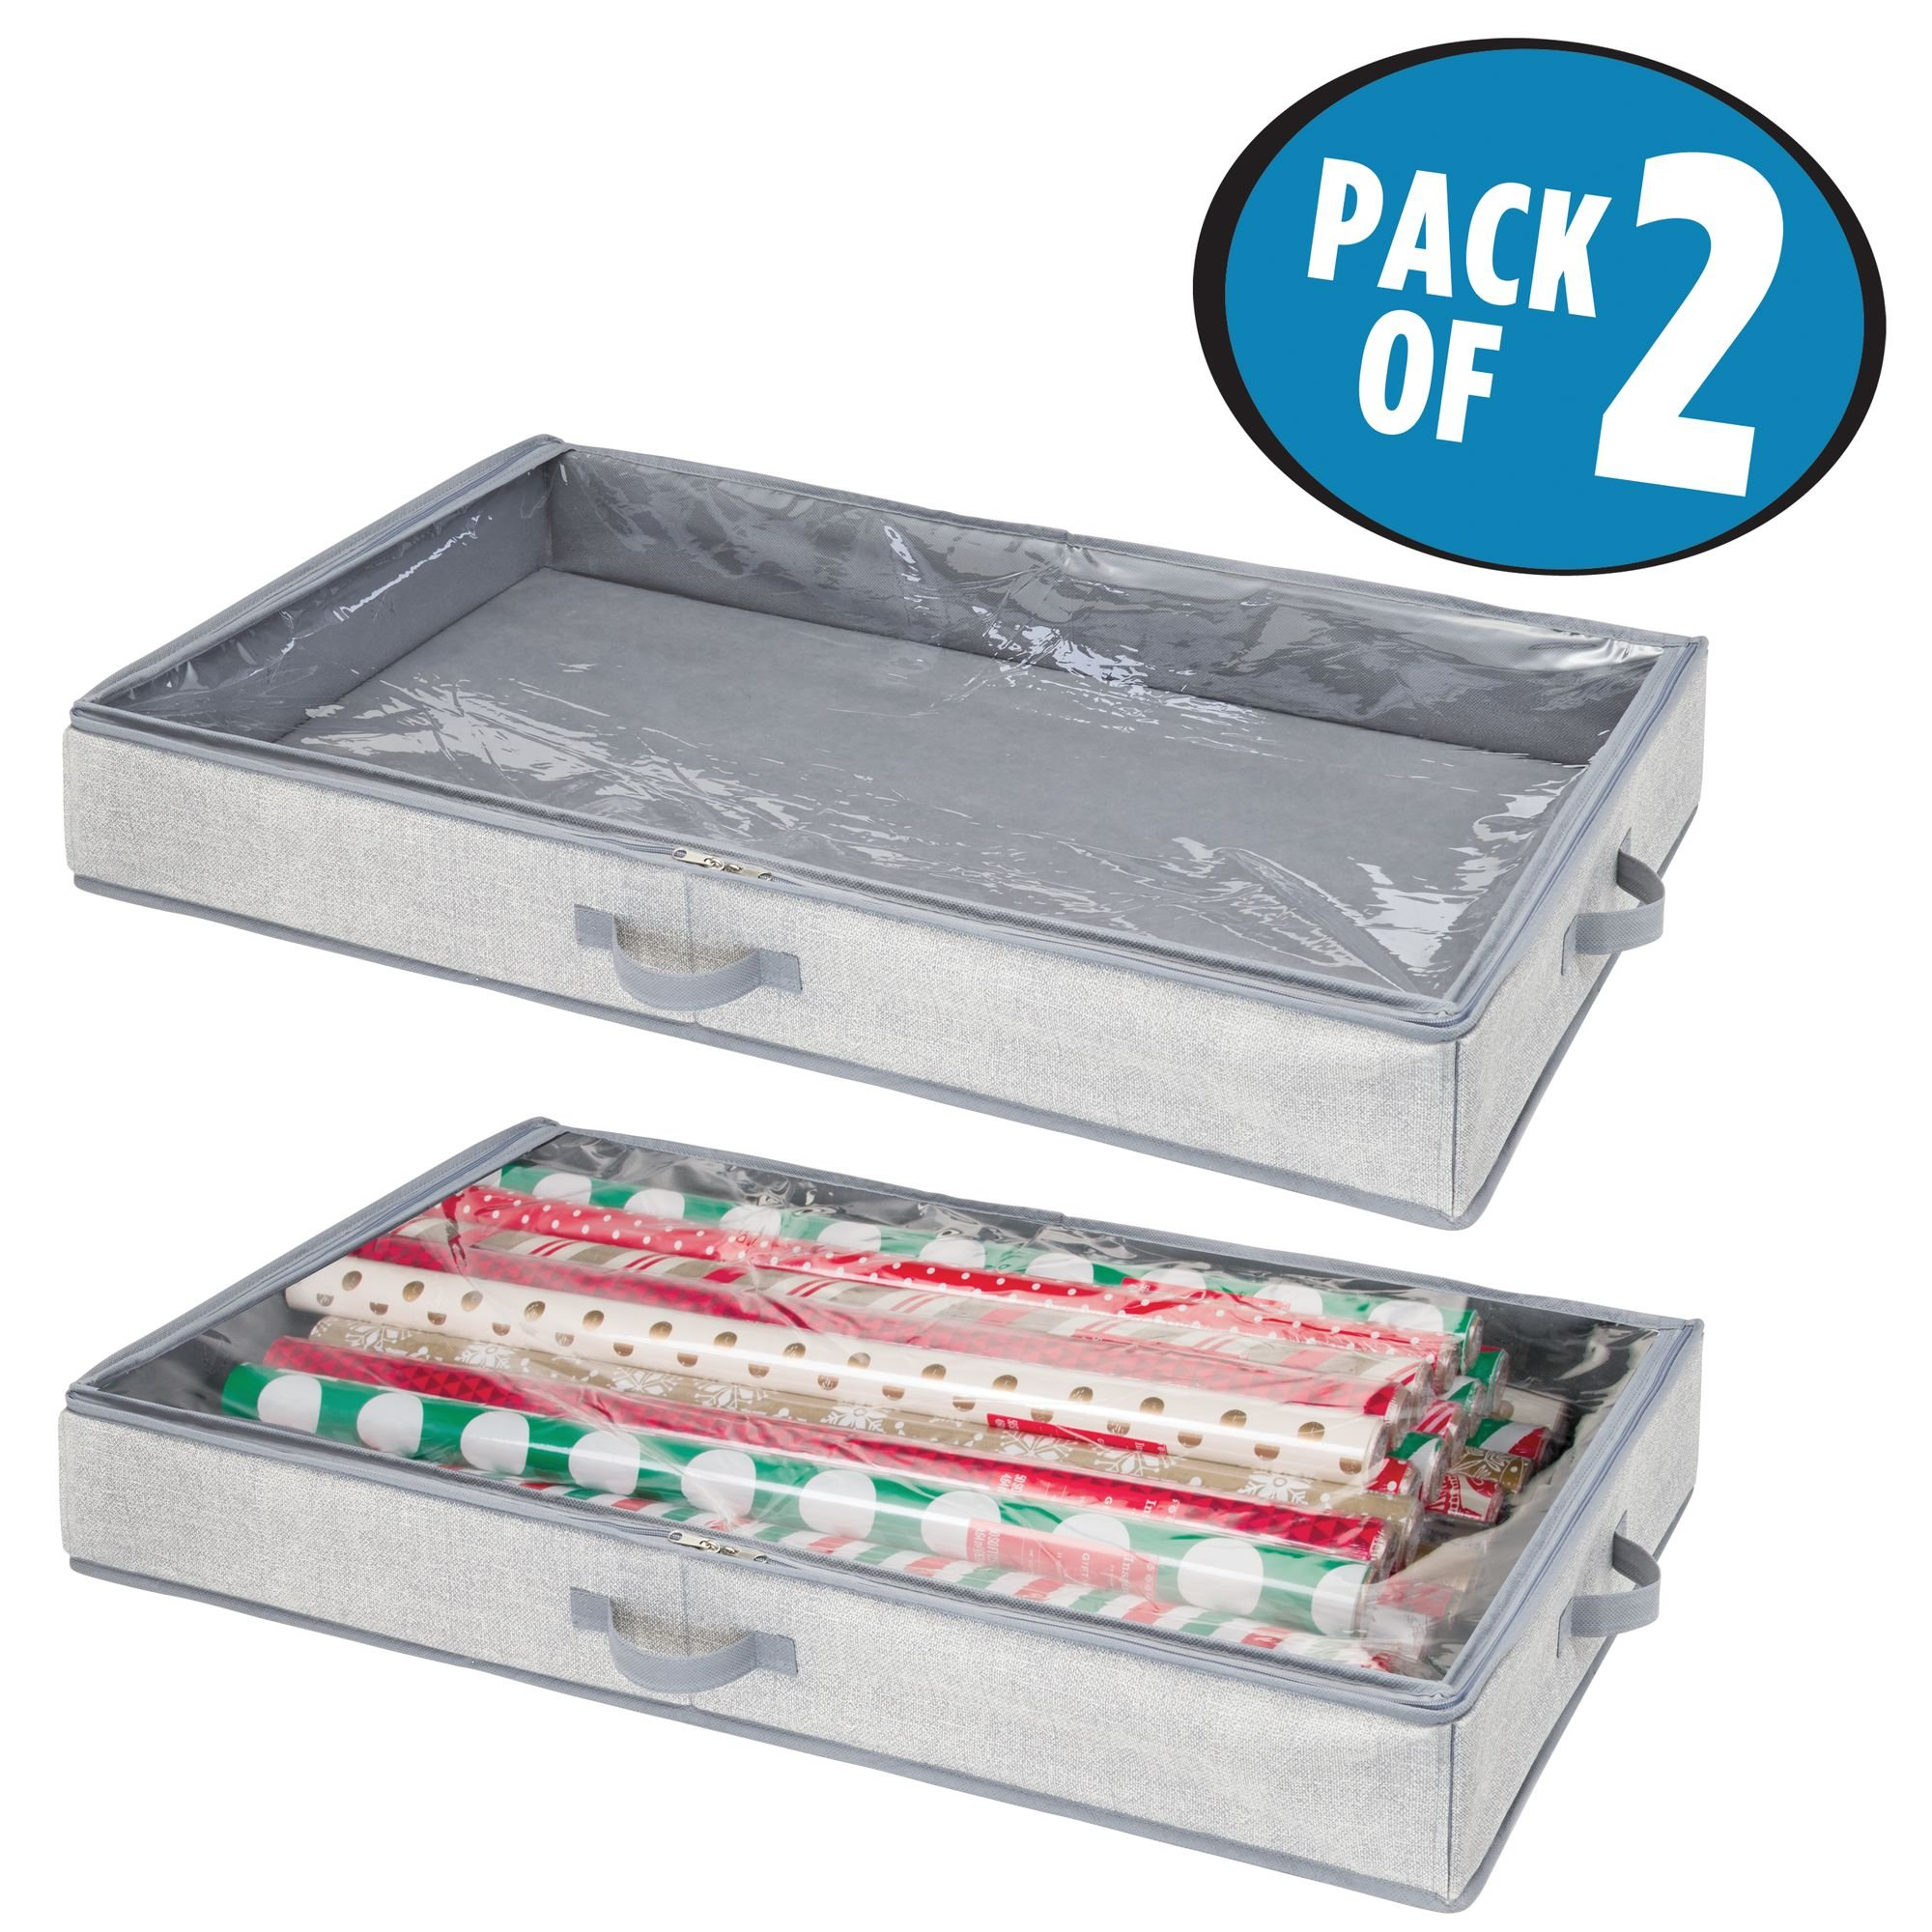 mDesign Soft Fabric Gift Wrap Storage Organizer Holder Box - Low Profile, Easy-View Clear Top Panel, Attached 2-Way Zippered Lid, Side Handles, Stores Long Rolls of Gift Wrap, Pack of 2, Gray by mDesign